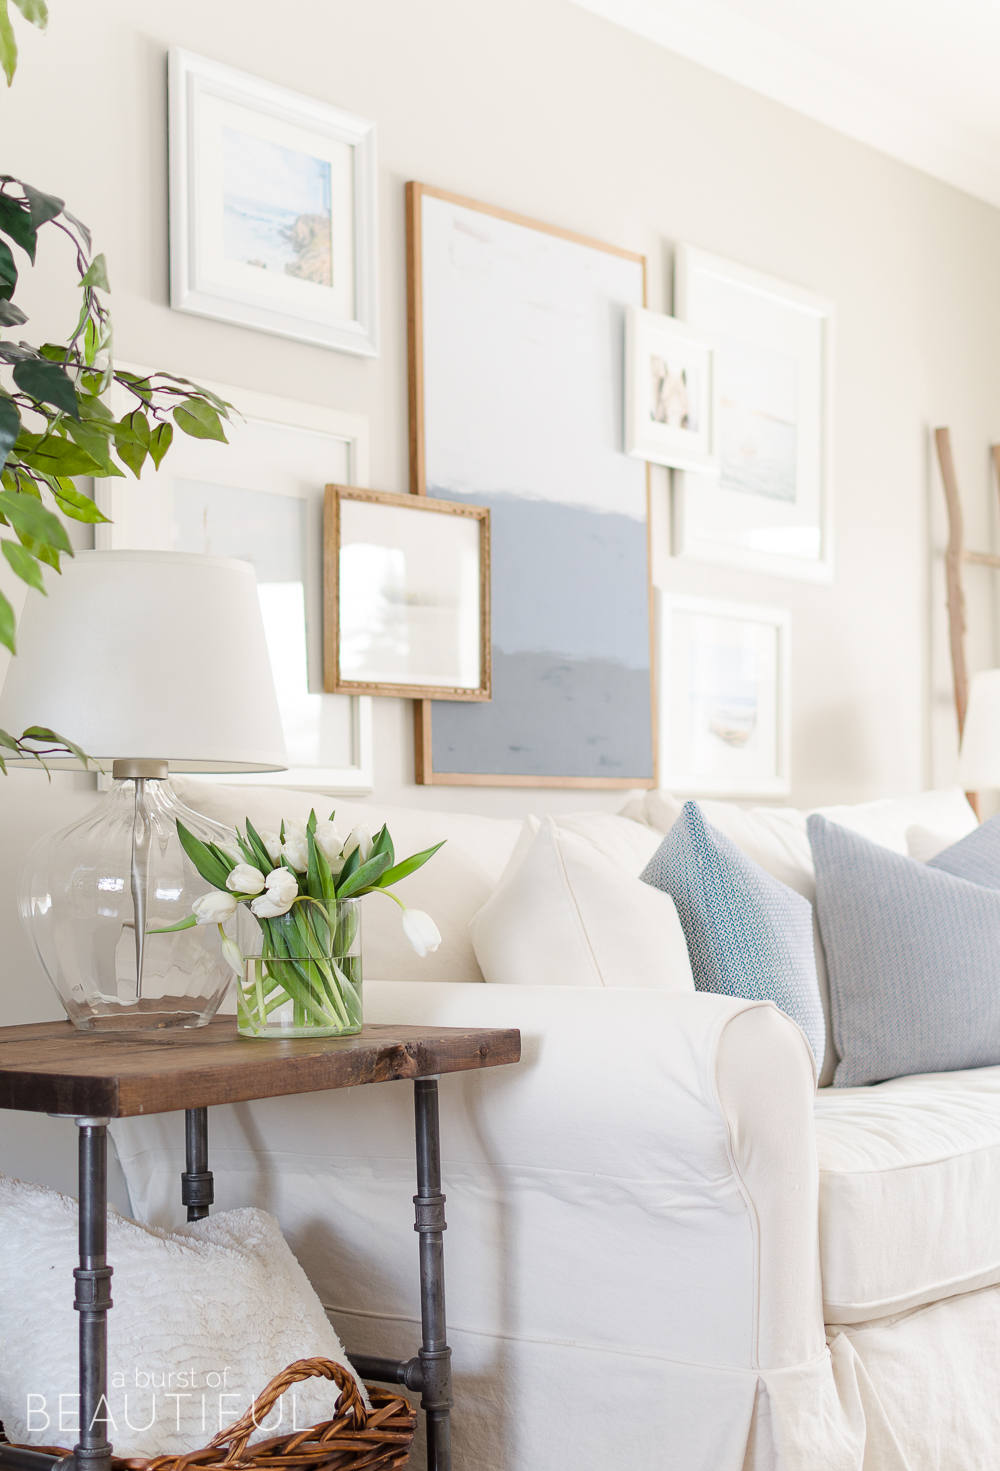 2017 Spring Home Tour: Our Living Room - A Burst Of Beautiful